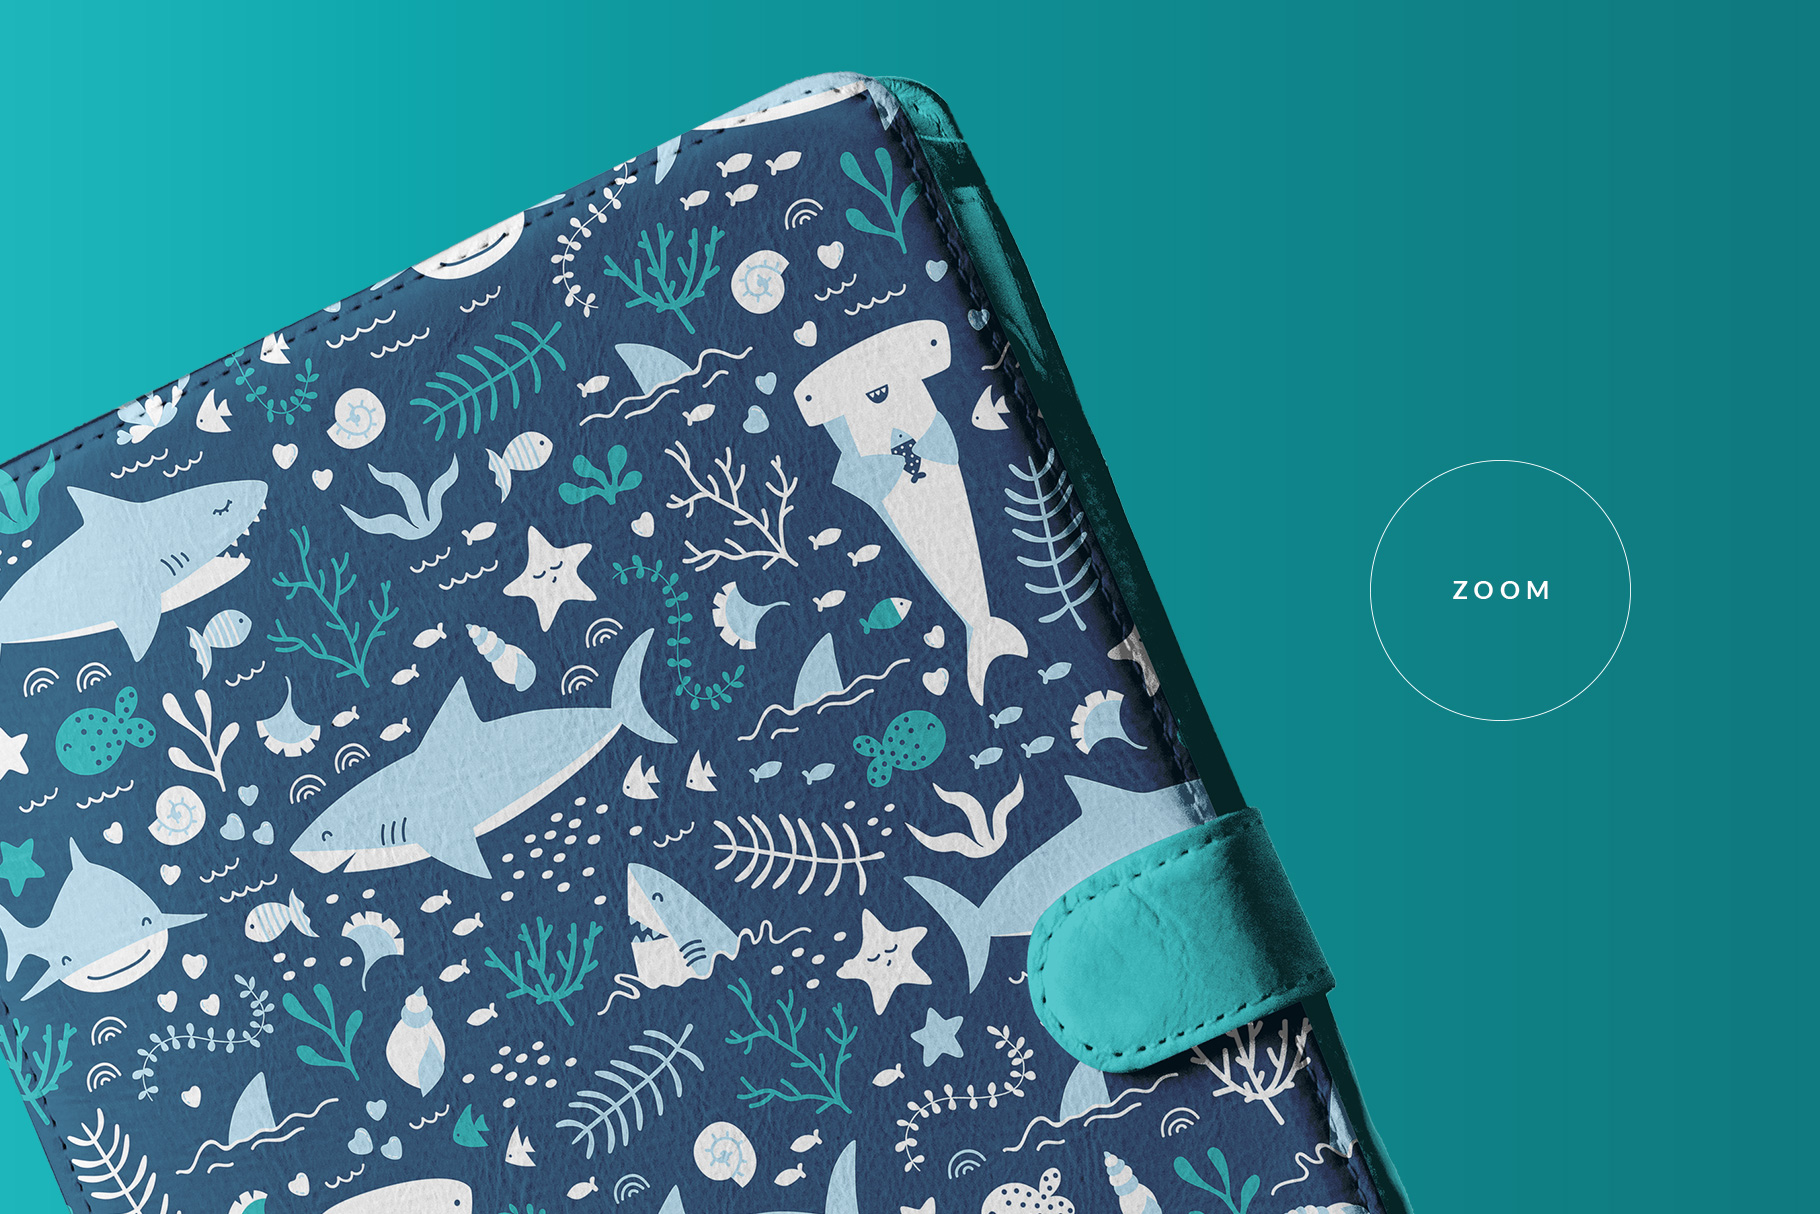 zoomed in image of the iPad diary case mockup